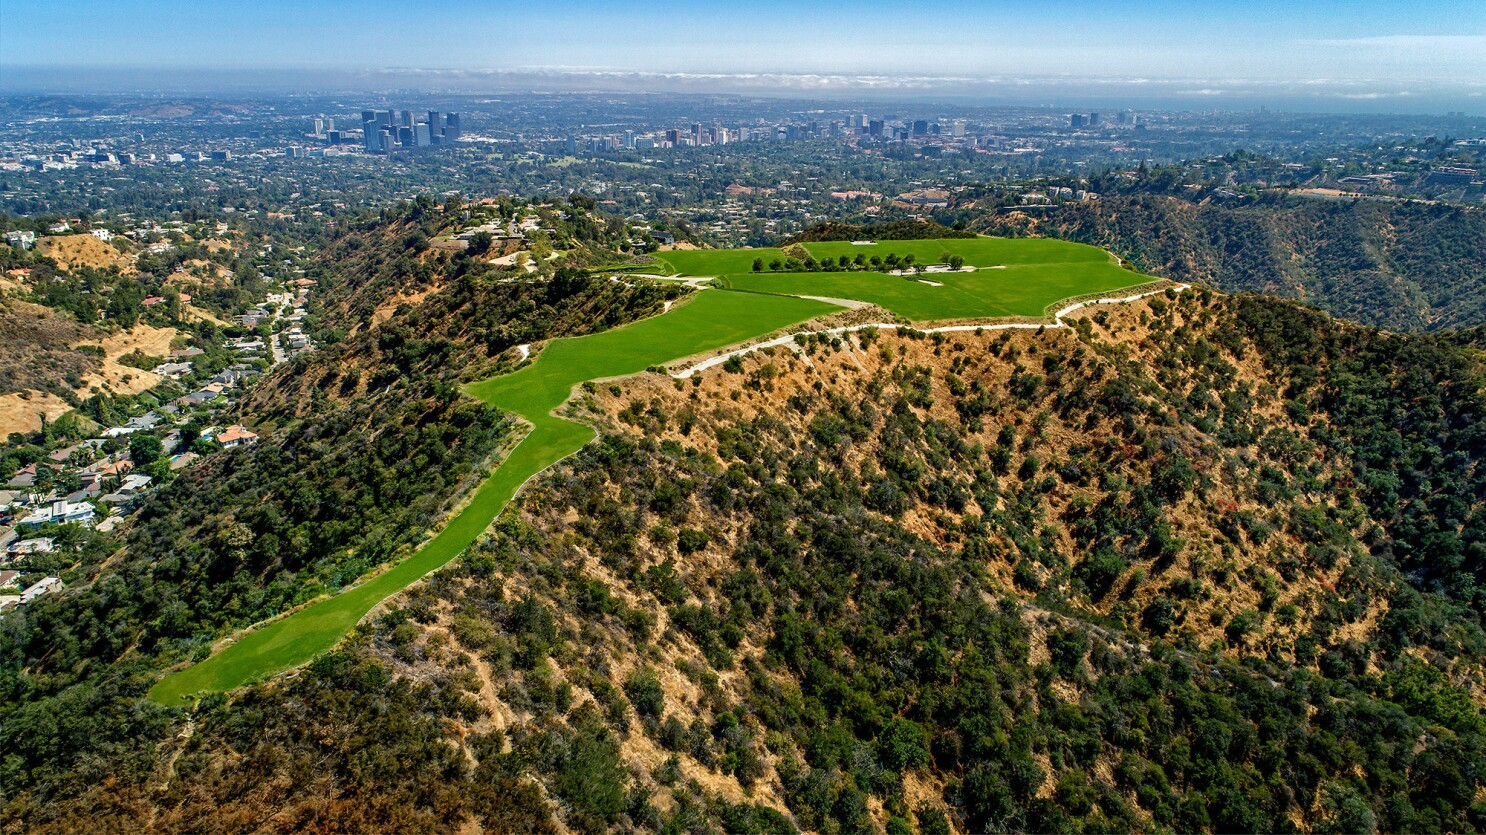 The Mountain in Beverly Hills, once listed for $1 billion, just sold for $100,000.